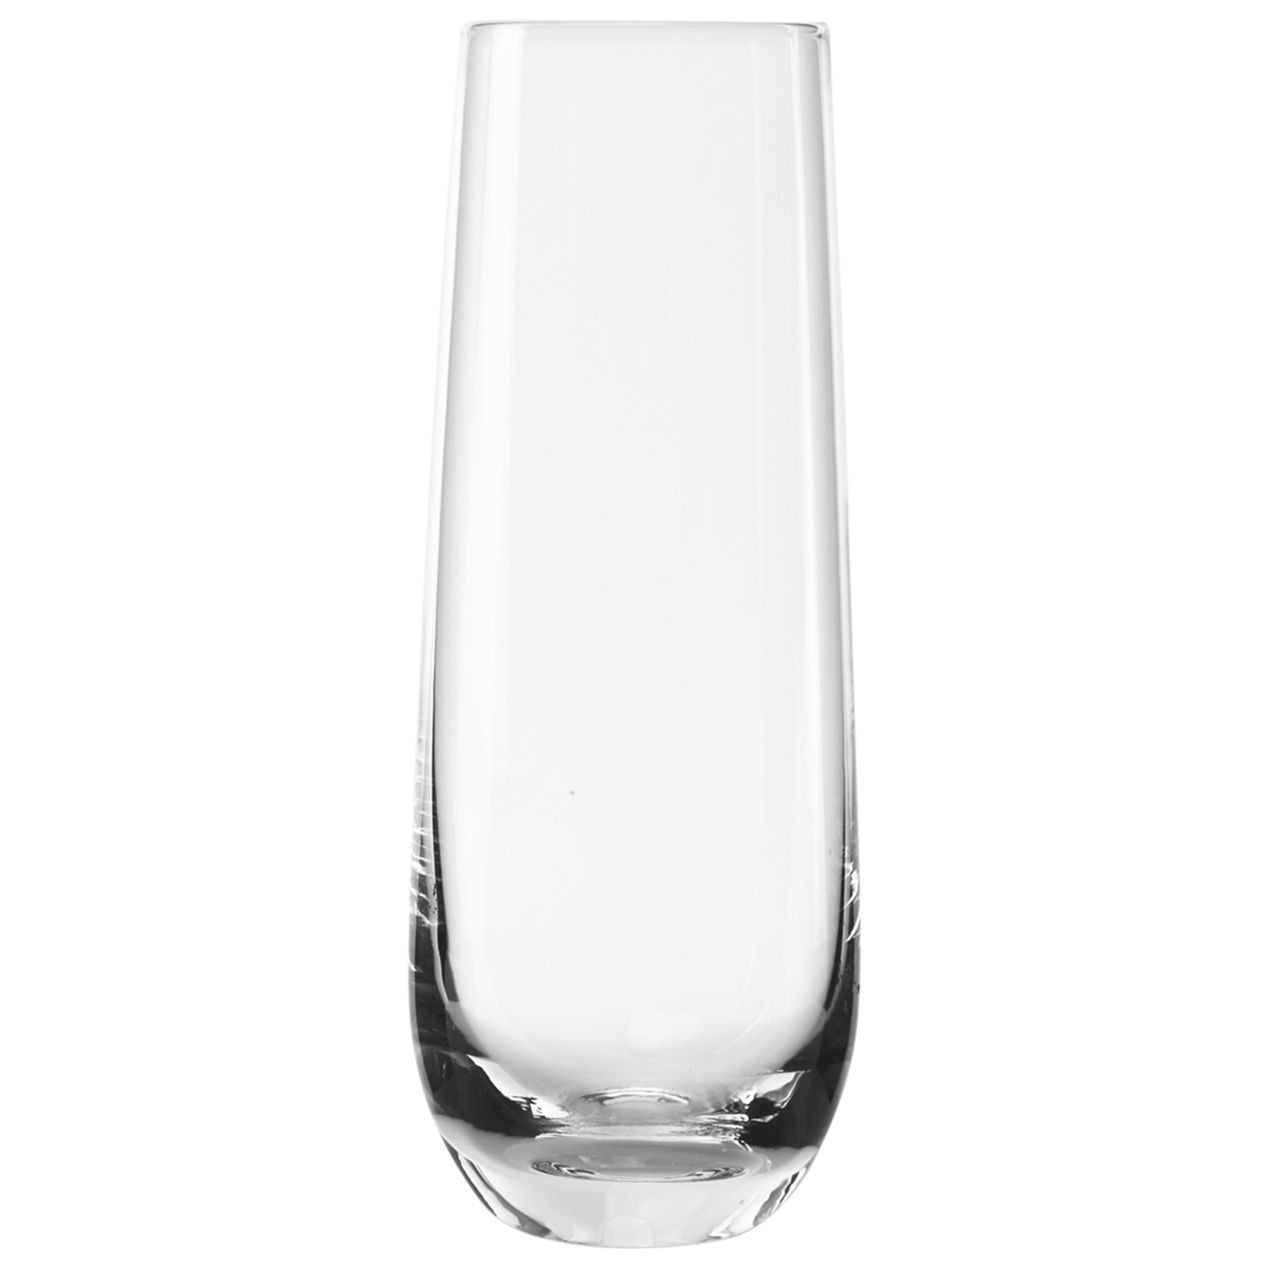 10.5 cylinder vase of stemless flute 10 5 oz s 4 at home within stemless flute 10 5 oz s 4